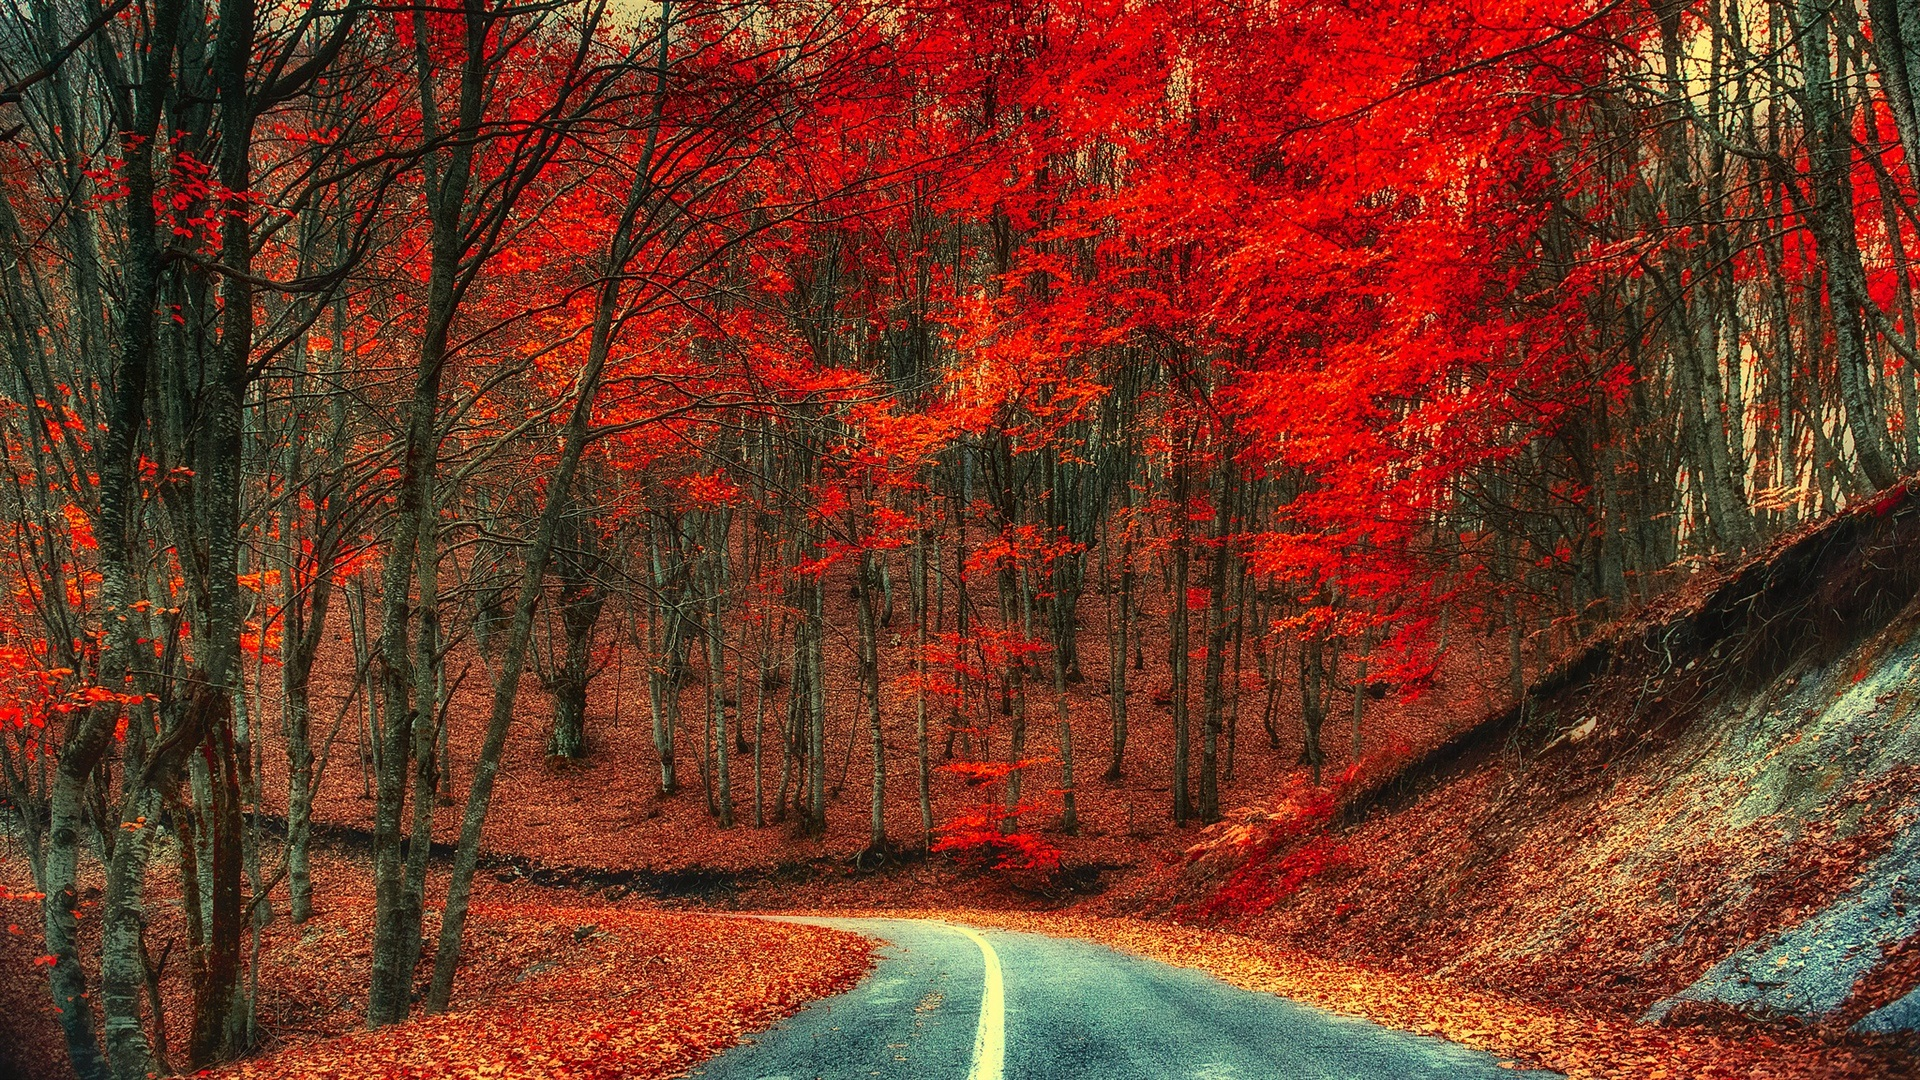 4k Laptop Wallpaper Fall Forest Autumn Road Trees Foliage Red Leaves Wallpaper